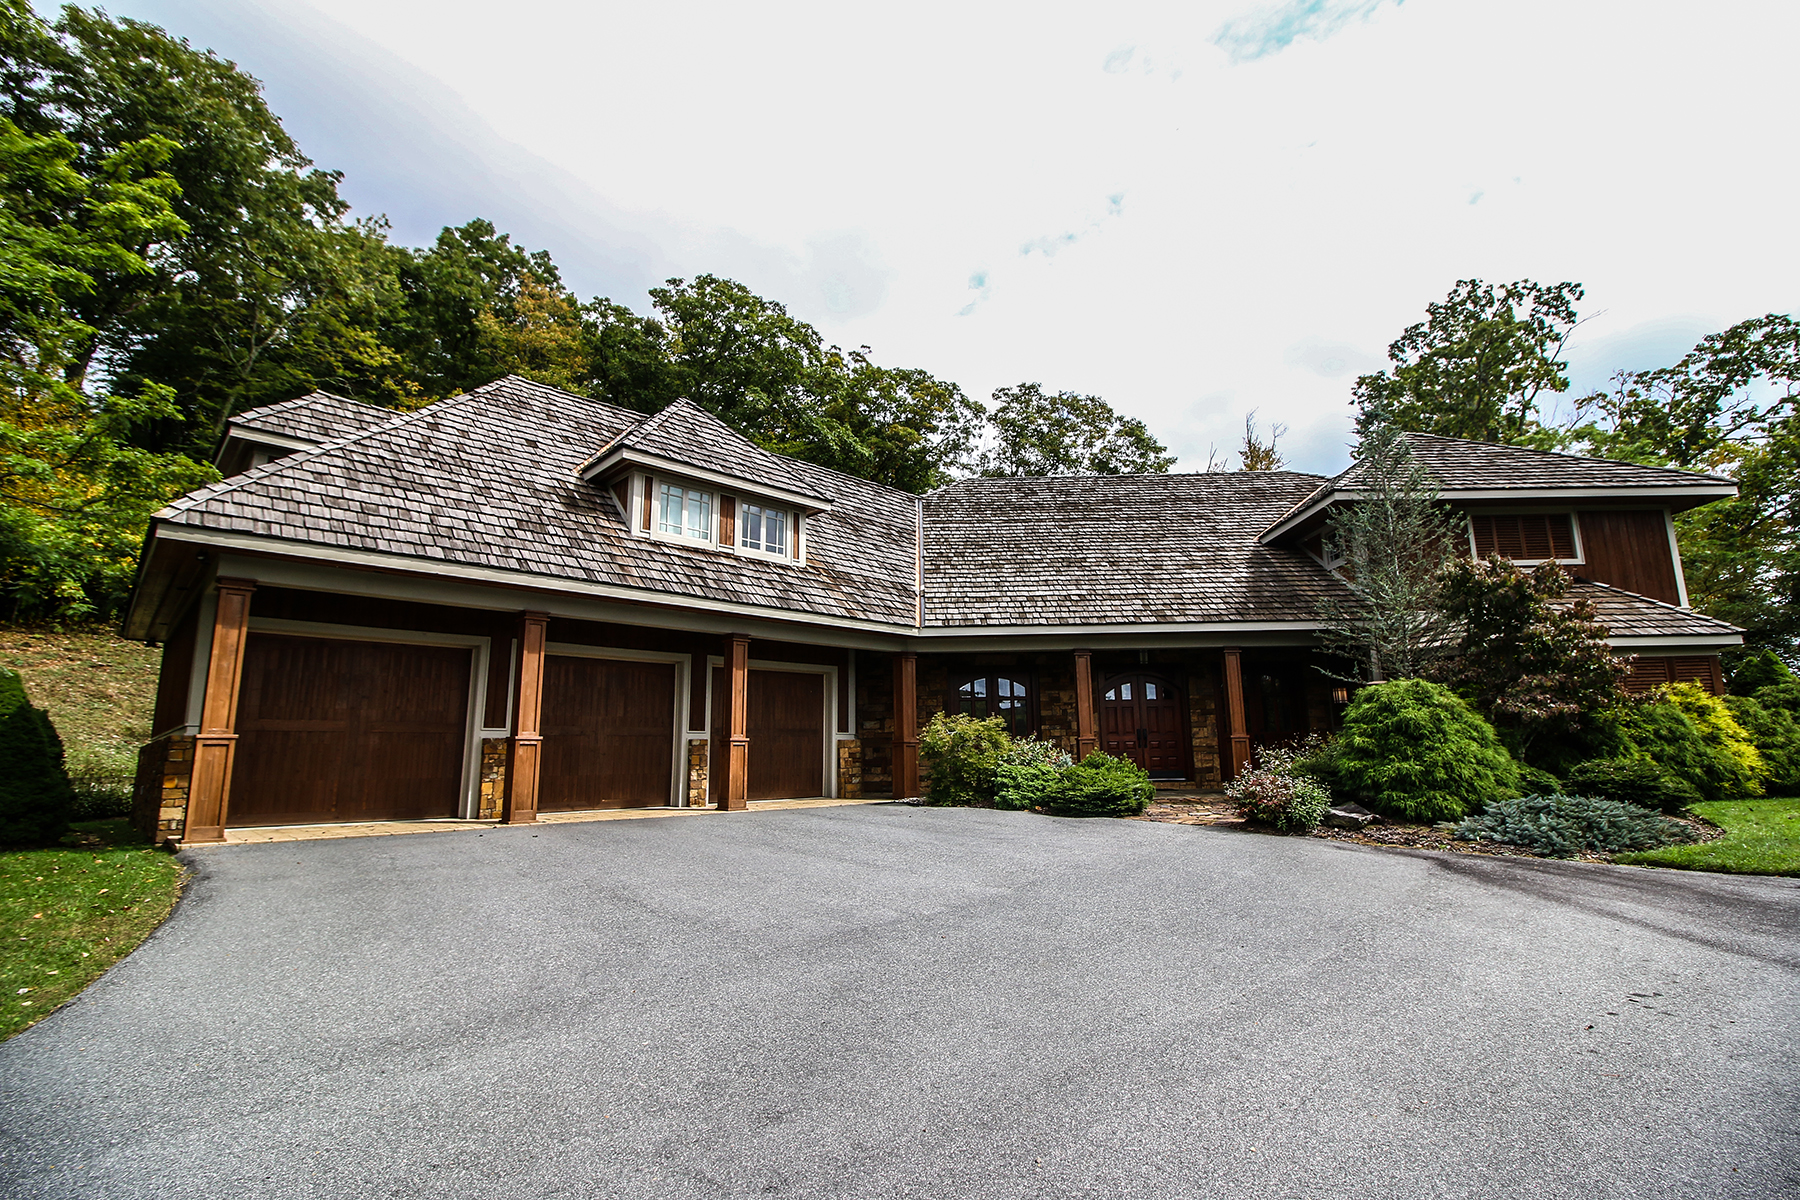 Single Family Home for Sale at BLOWING ROCK - TIMBER CREEK 510 Timber Crk, Blowing Rock, North Carolina 28605 United States